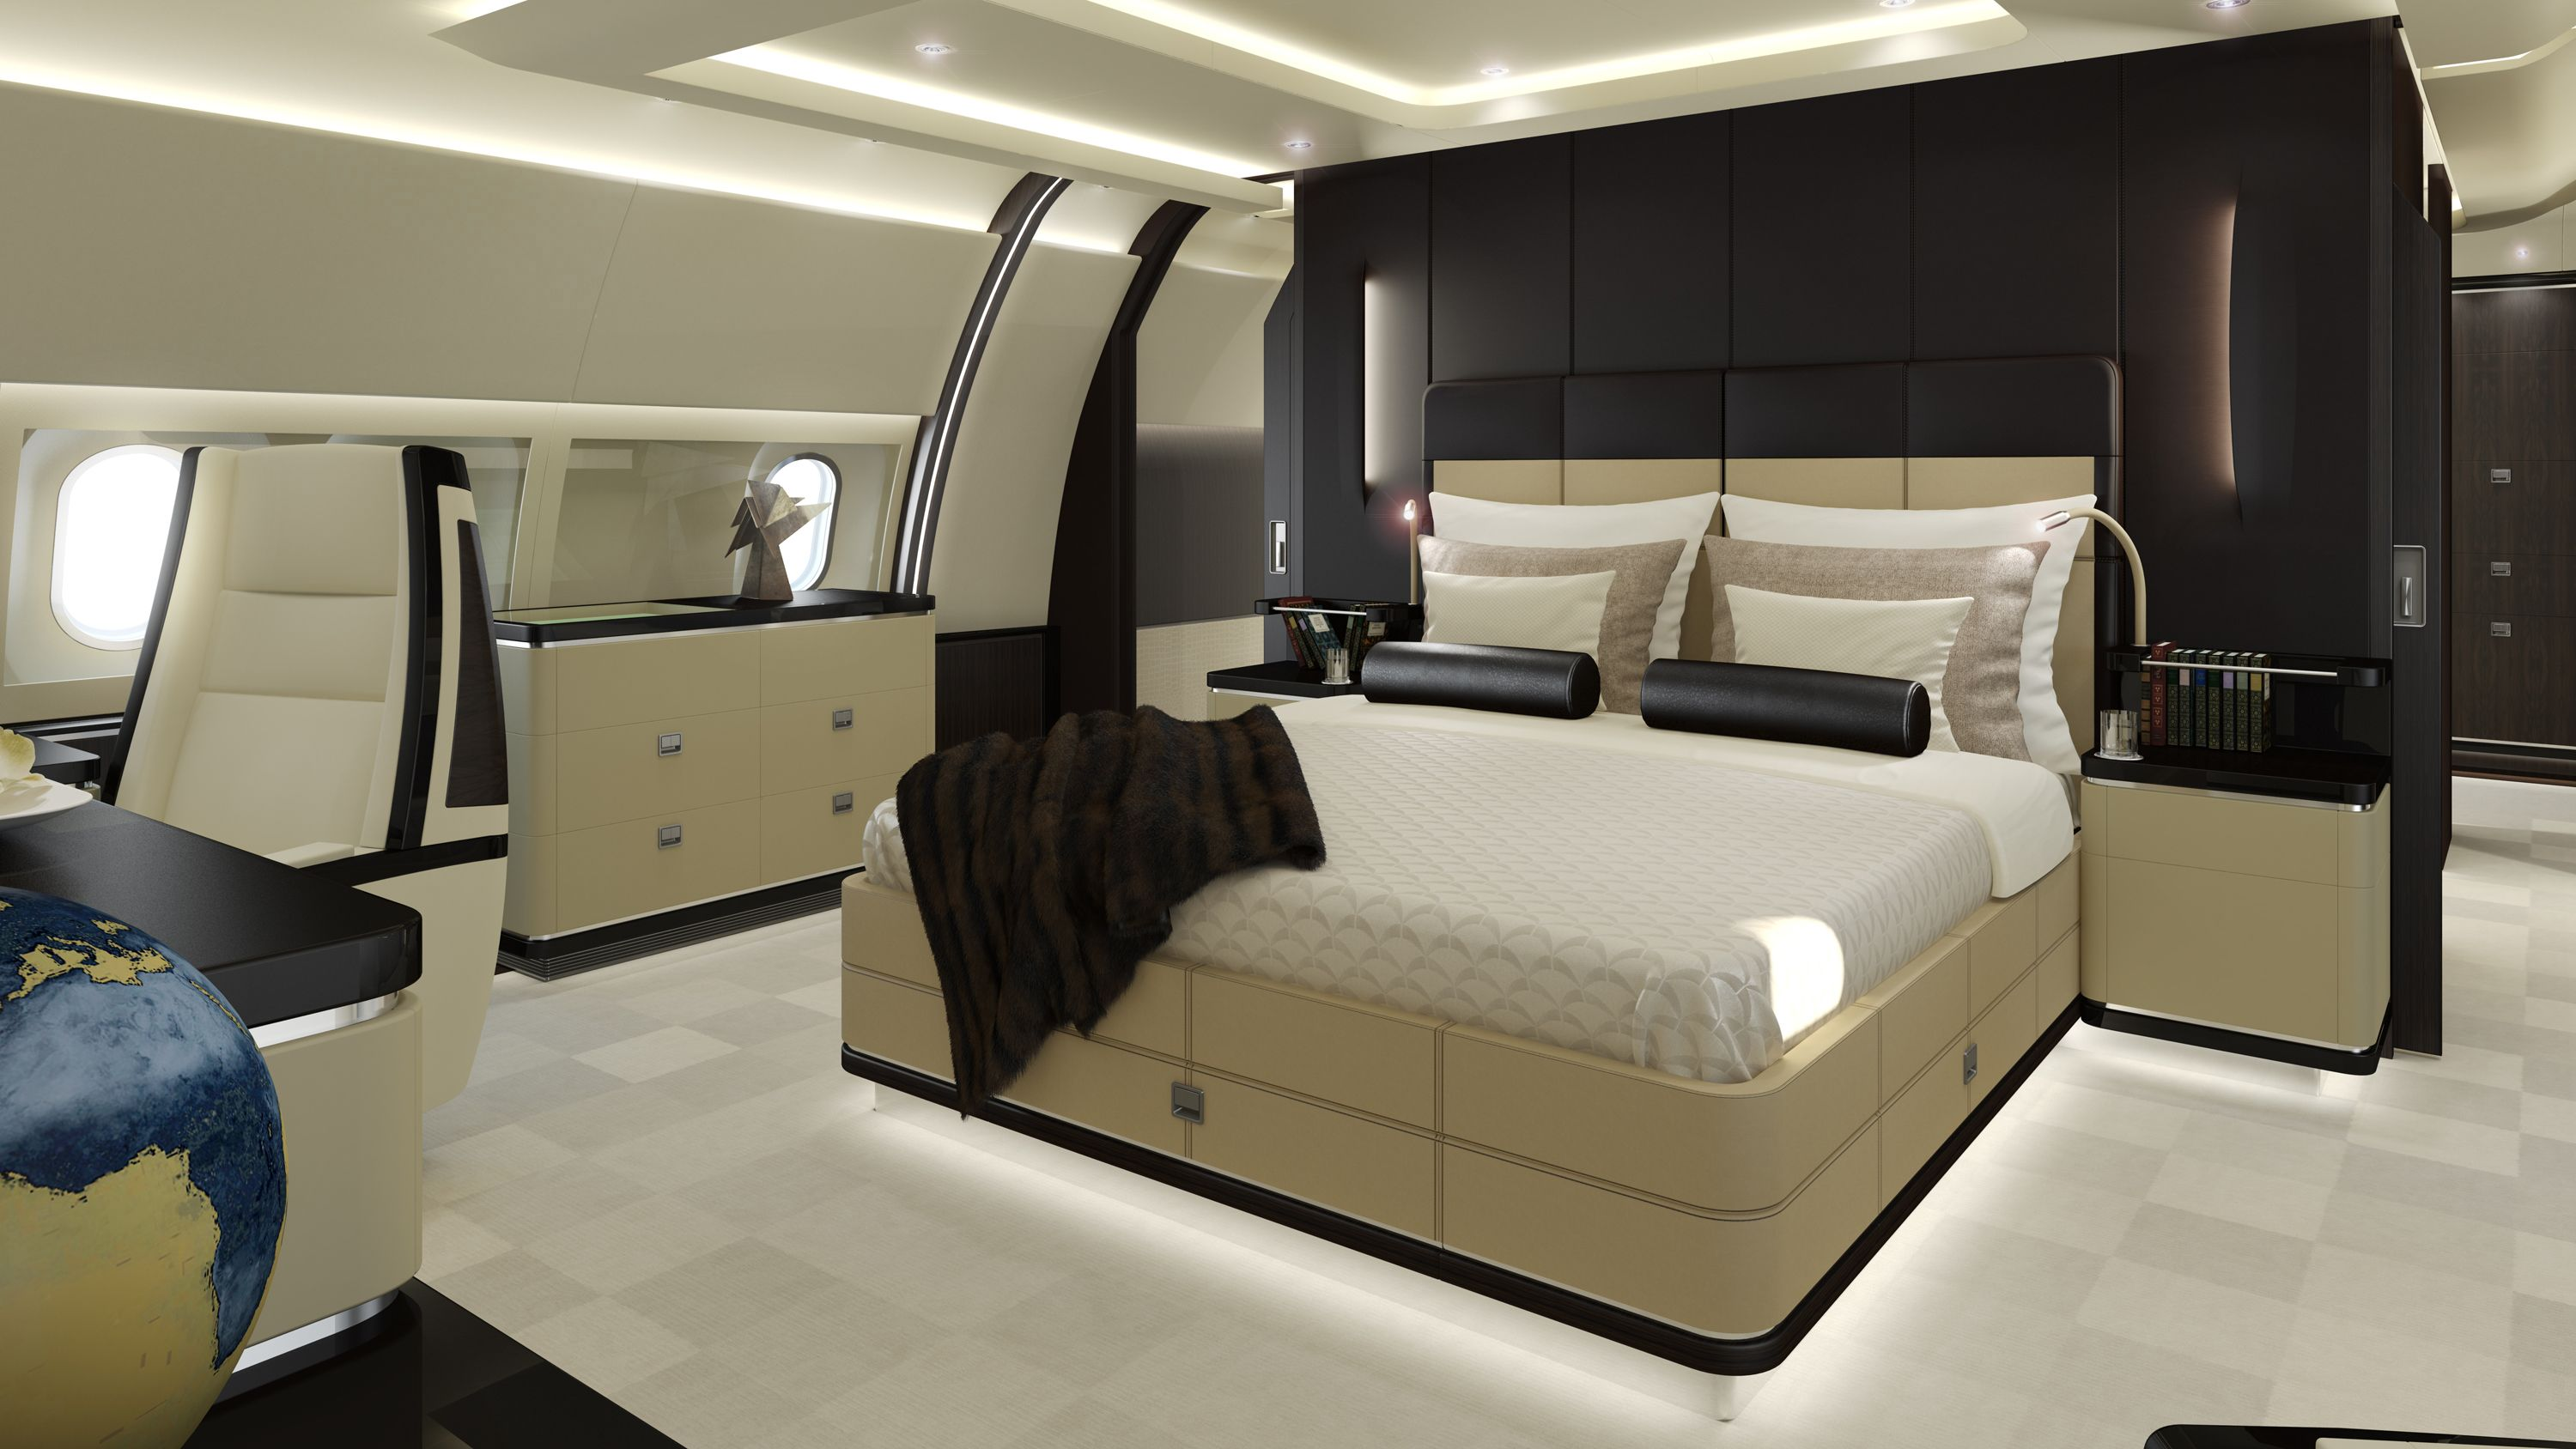 Lovely Private Jets With Bedrooms   Decoration Home Interior